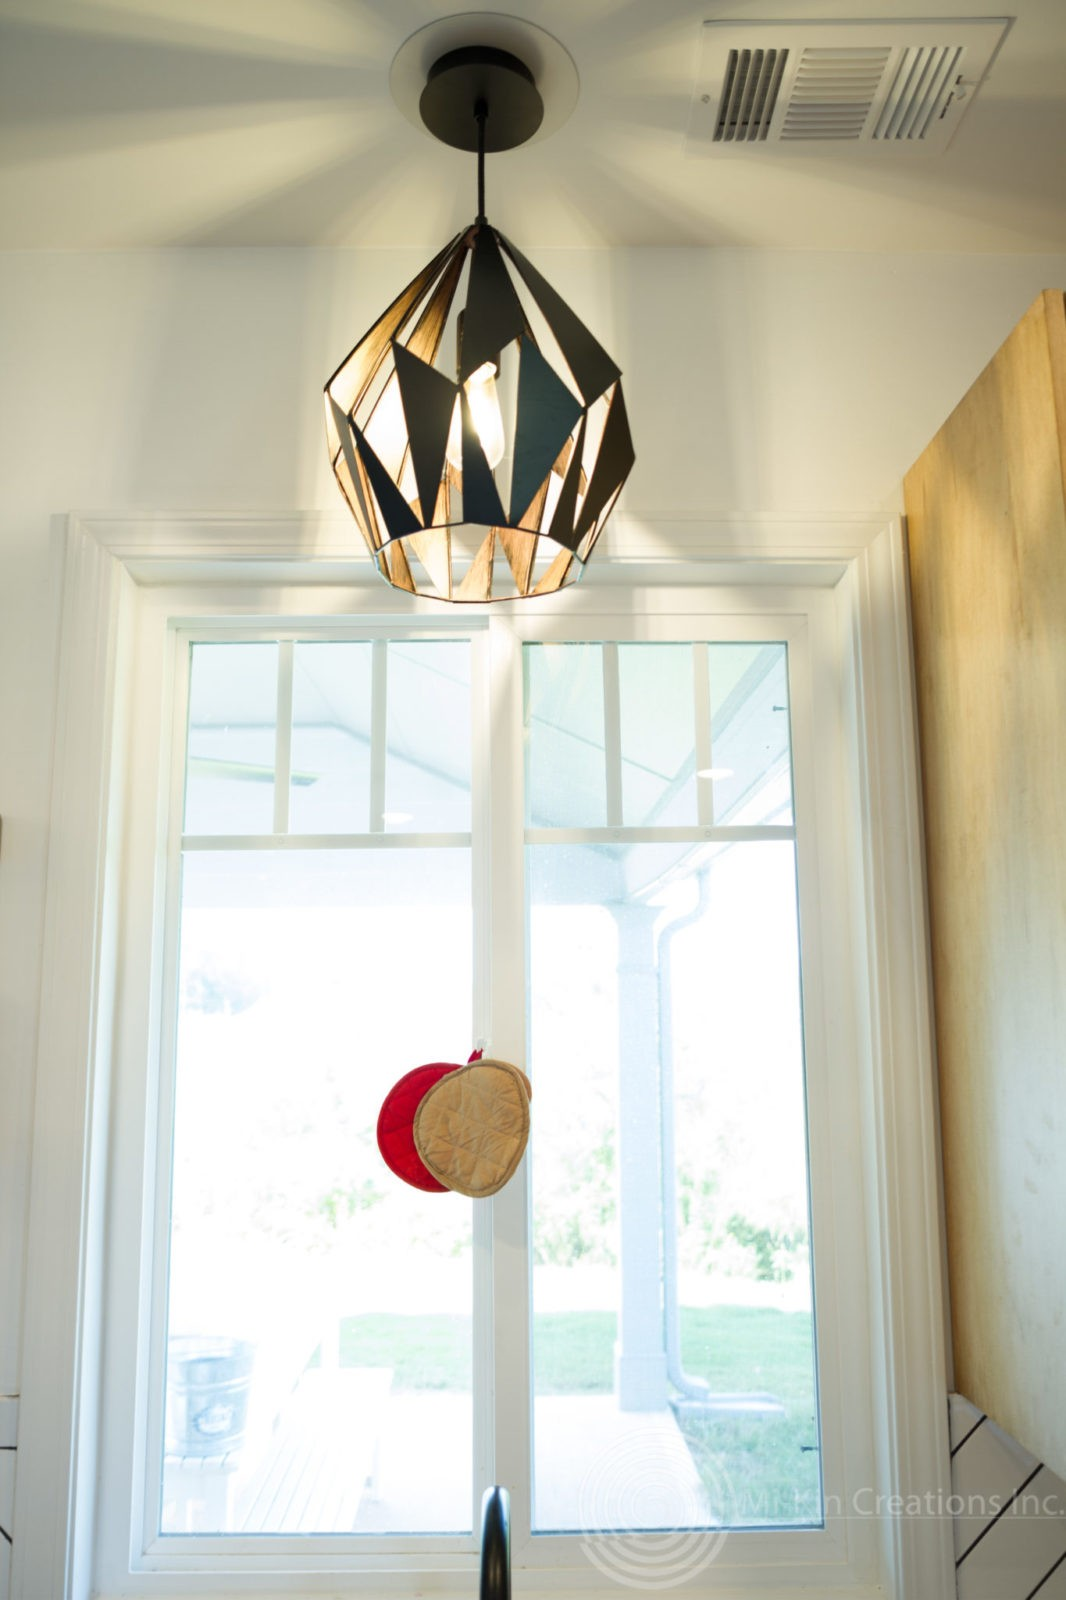 Modern Scandinavian Kitchen Remodel lighting above the kitchen sink.